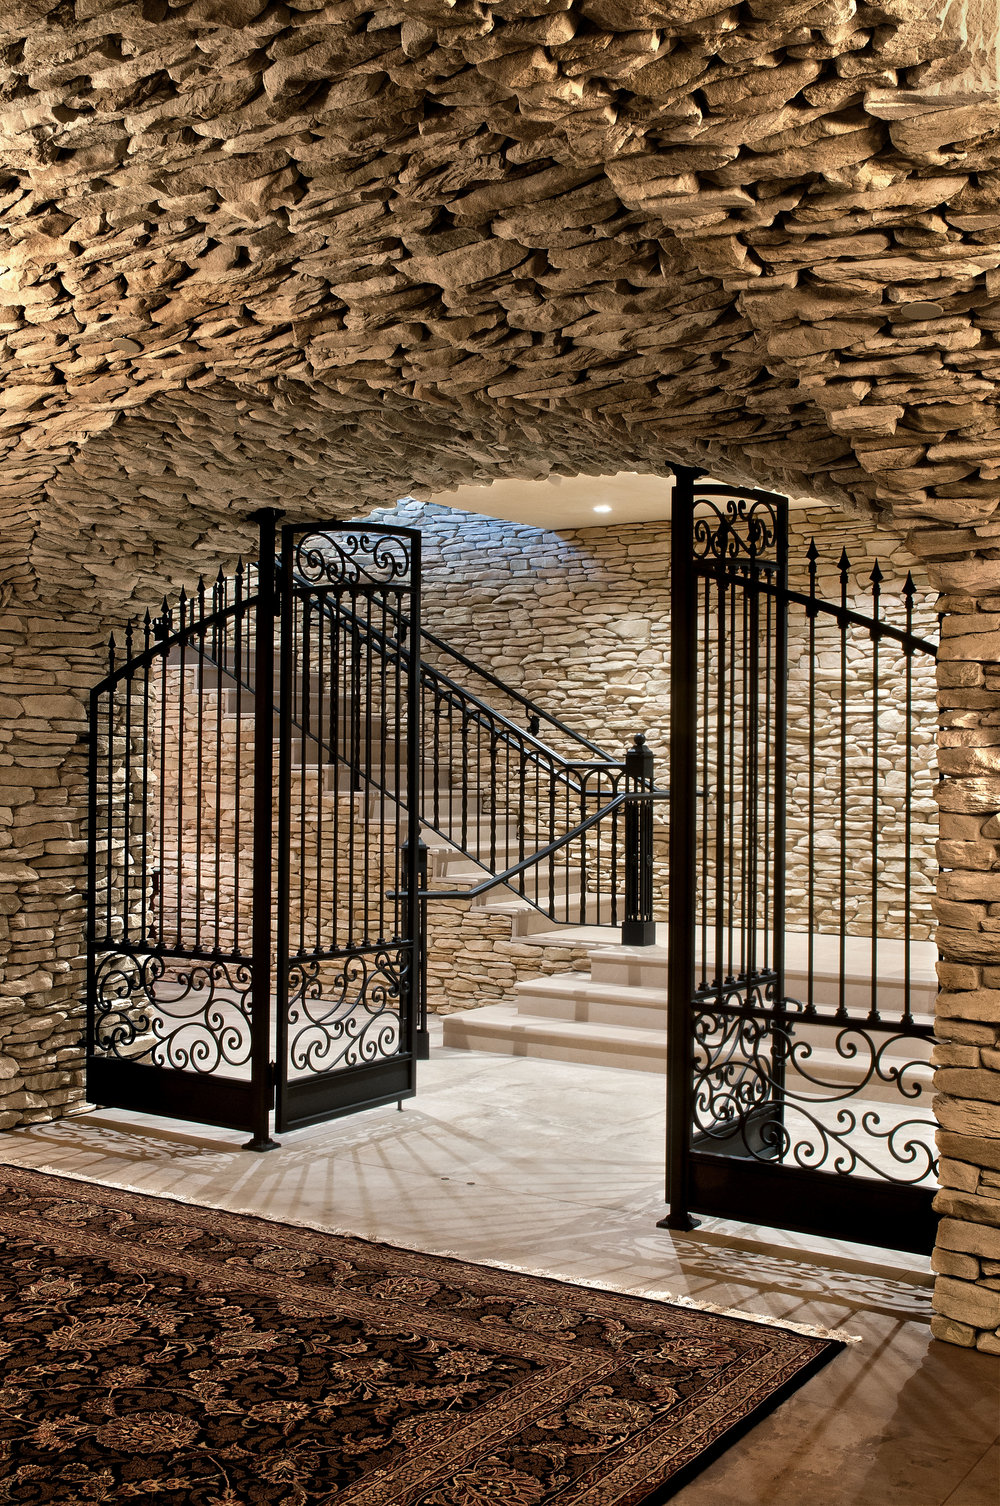 Domaine Serene: Wine Cellar